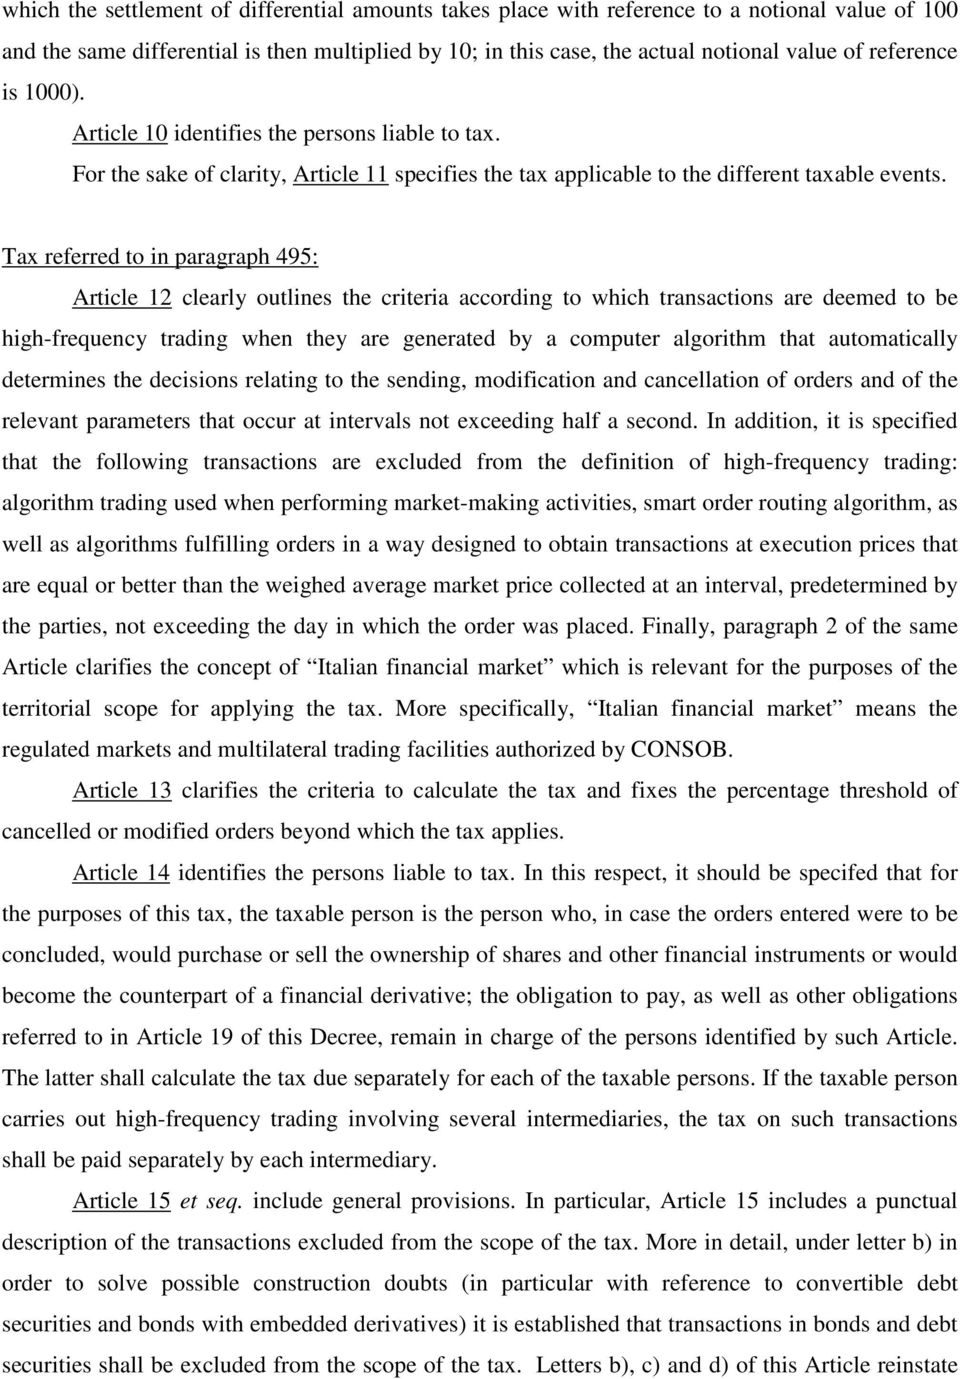 Tax referred to in paragraph 495: Article 12 clearly outlines the criteria according to which transactions are deemed to be high-frequency trading when they are generated by a computer algorithm that